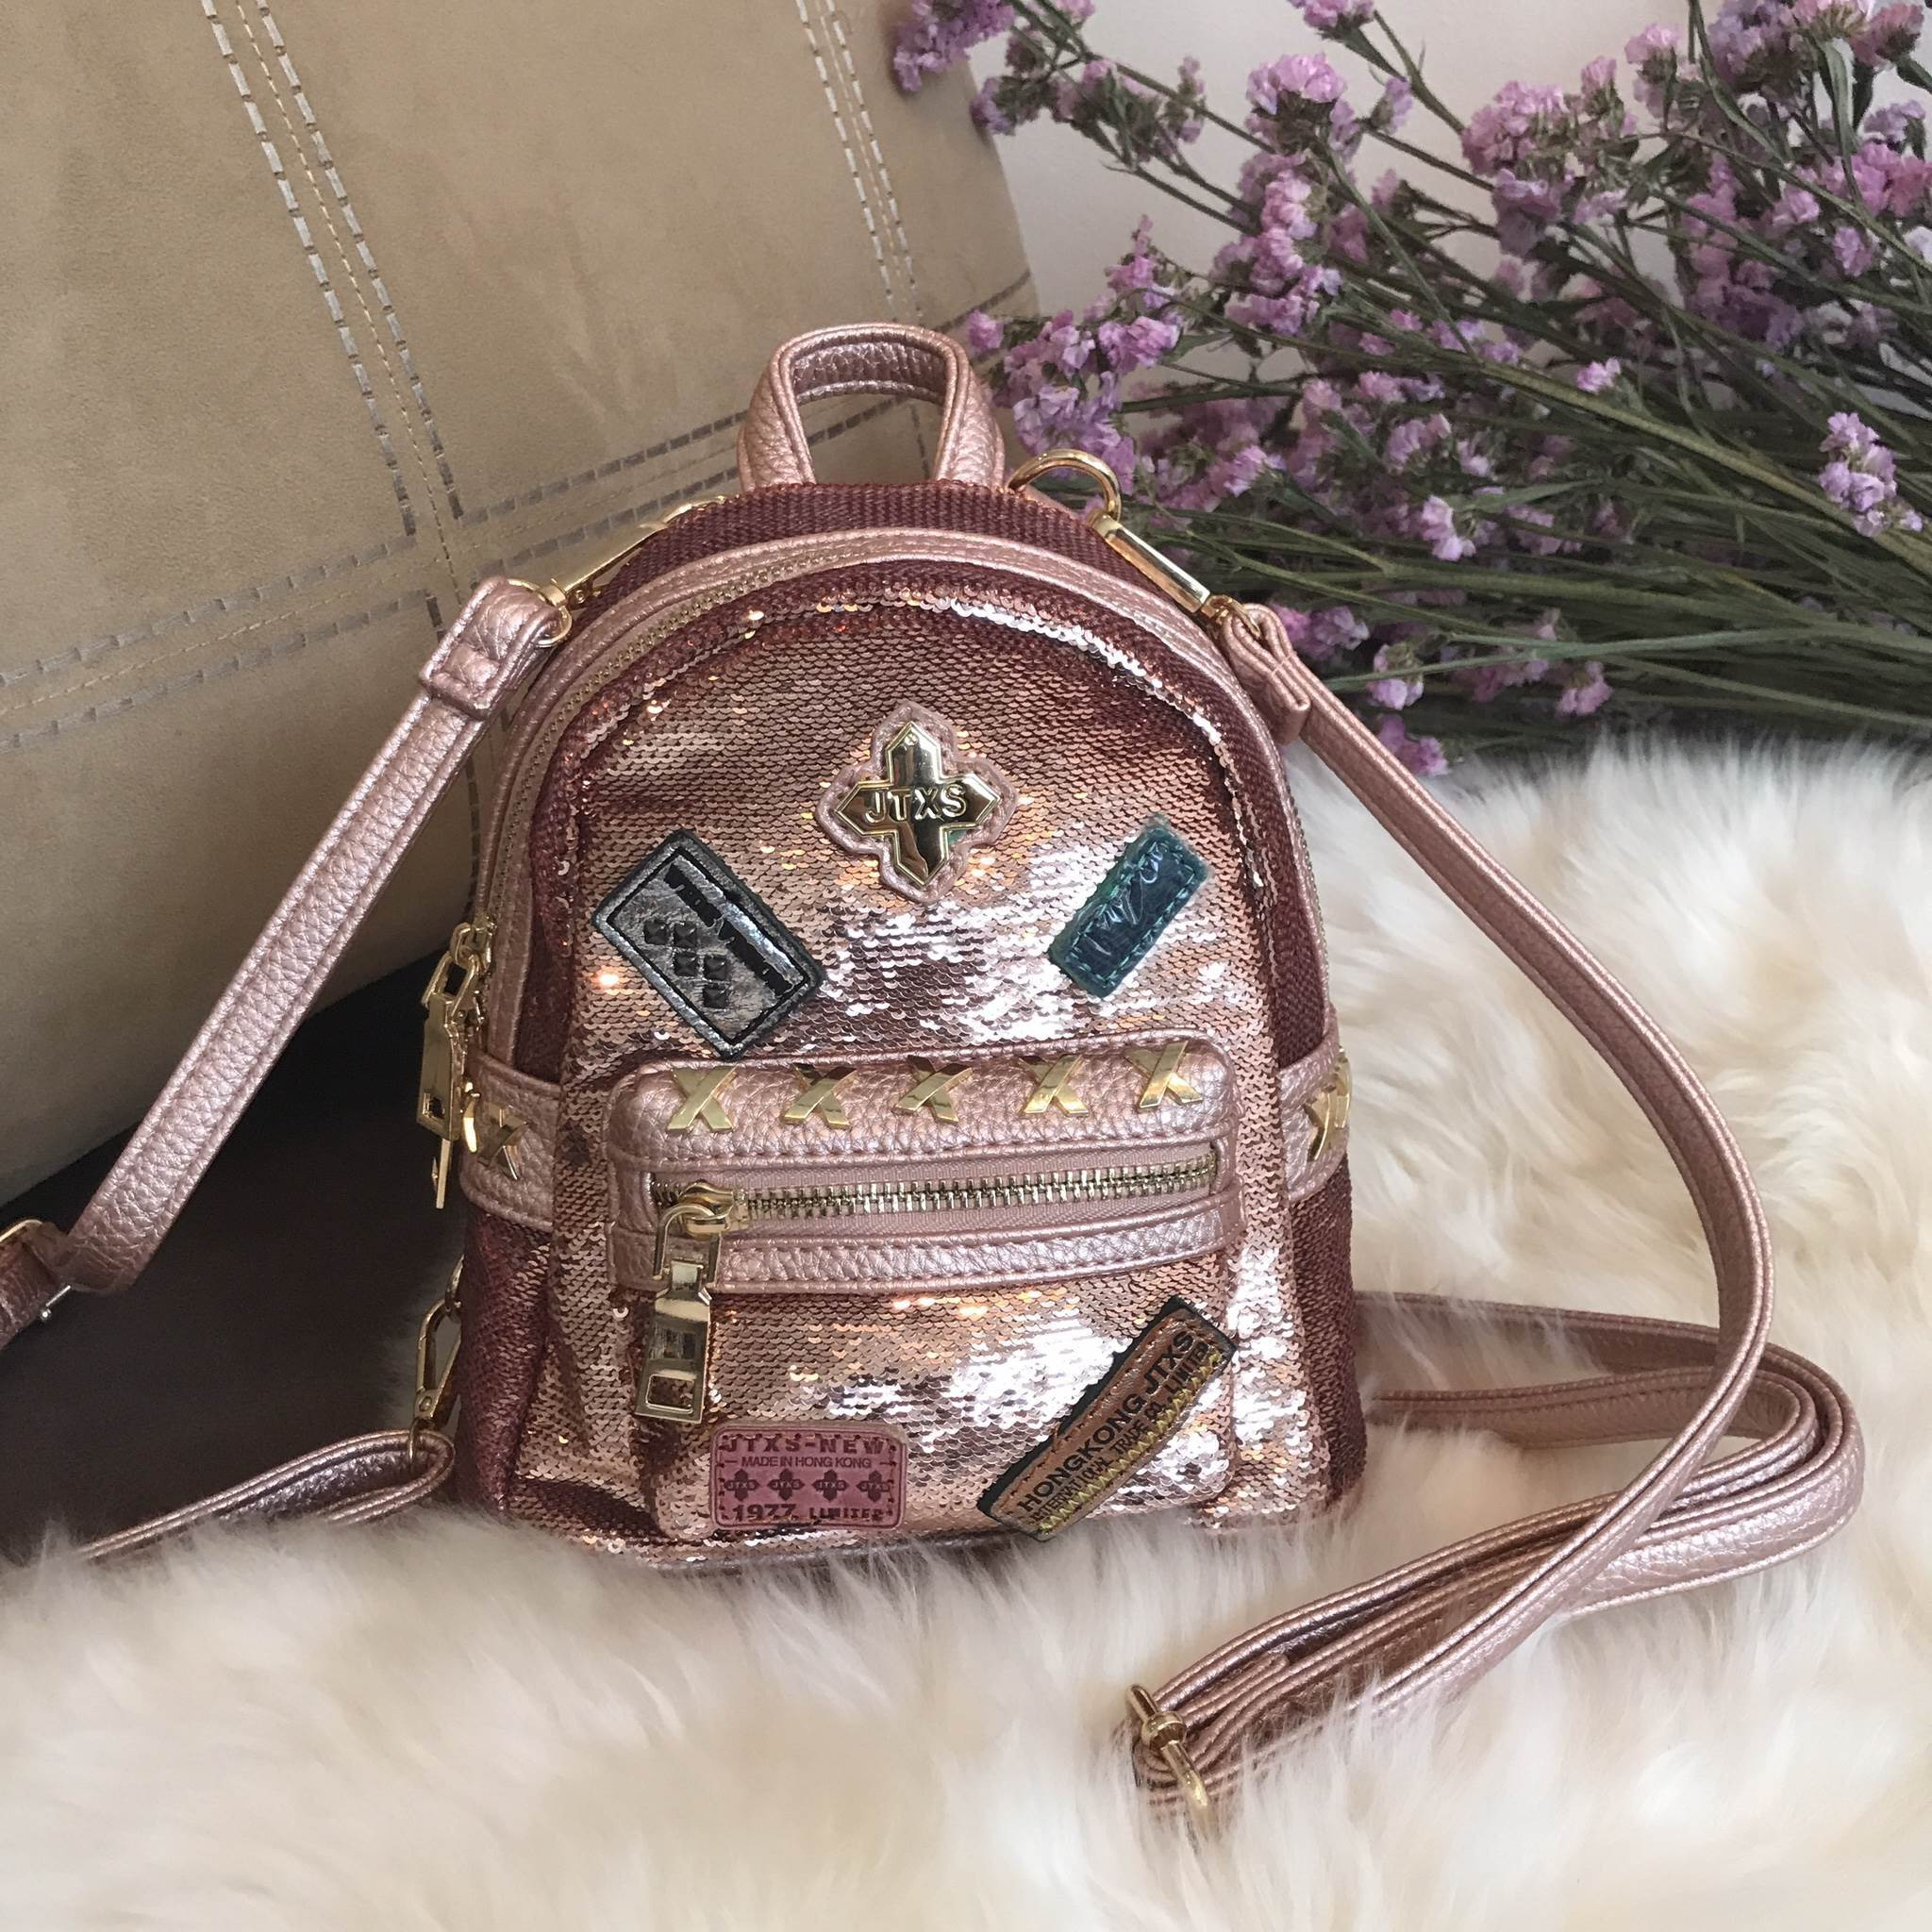 JTXS Limited Edition Backpack 2017